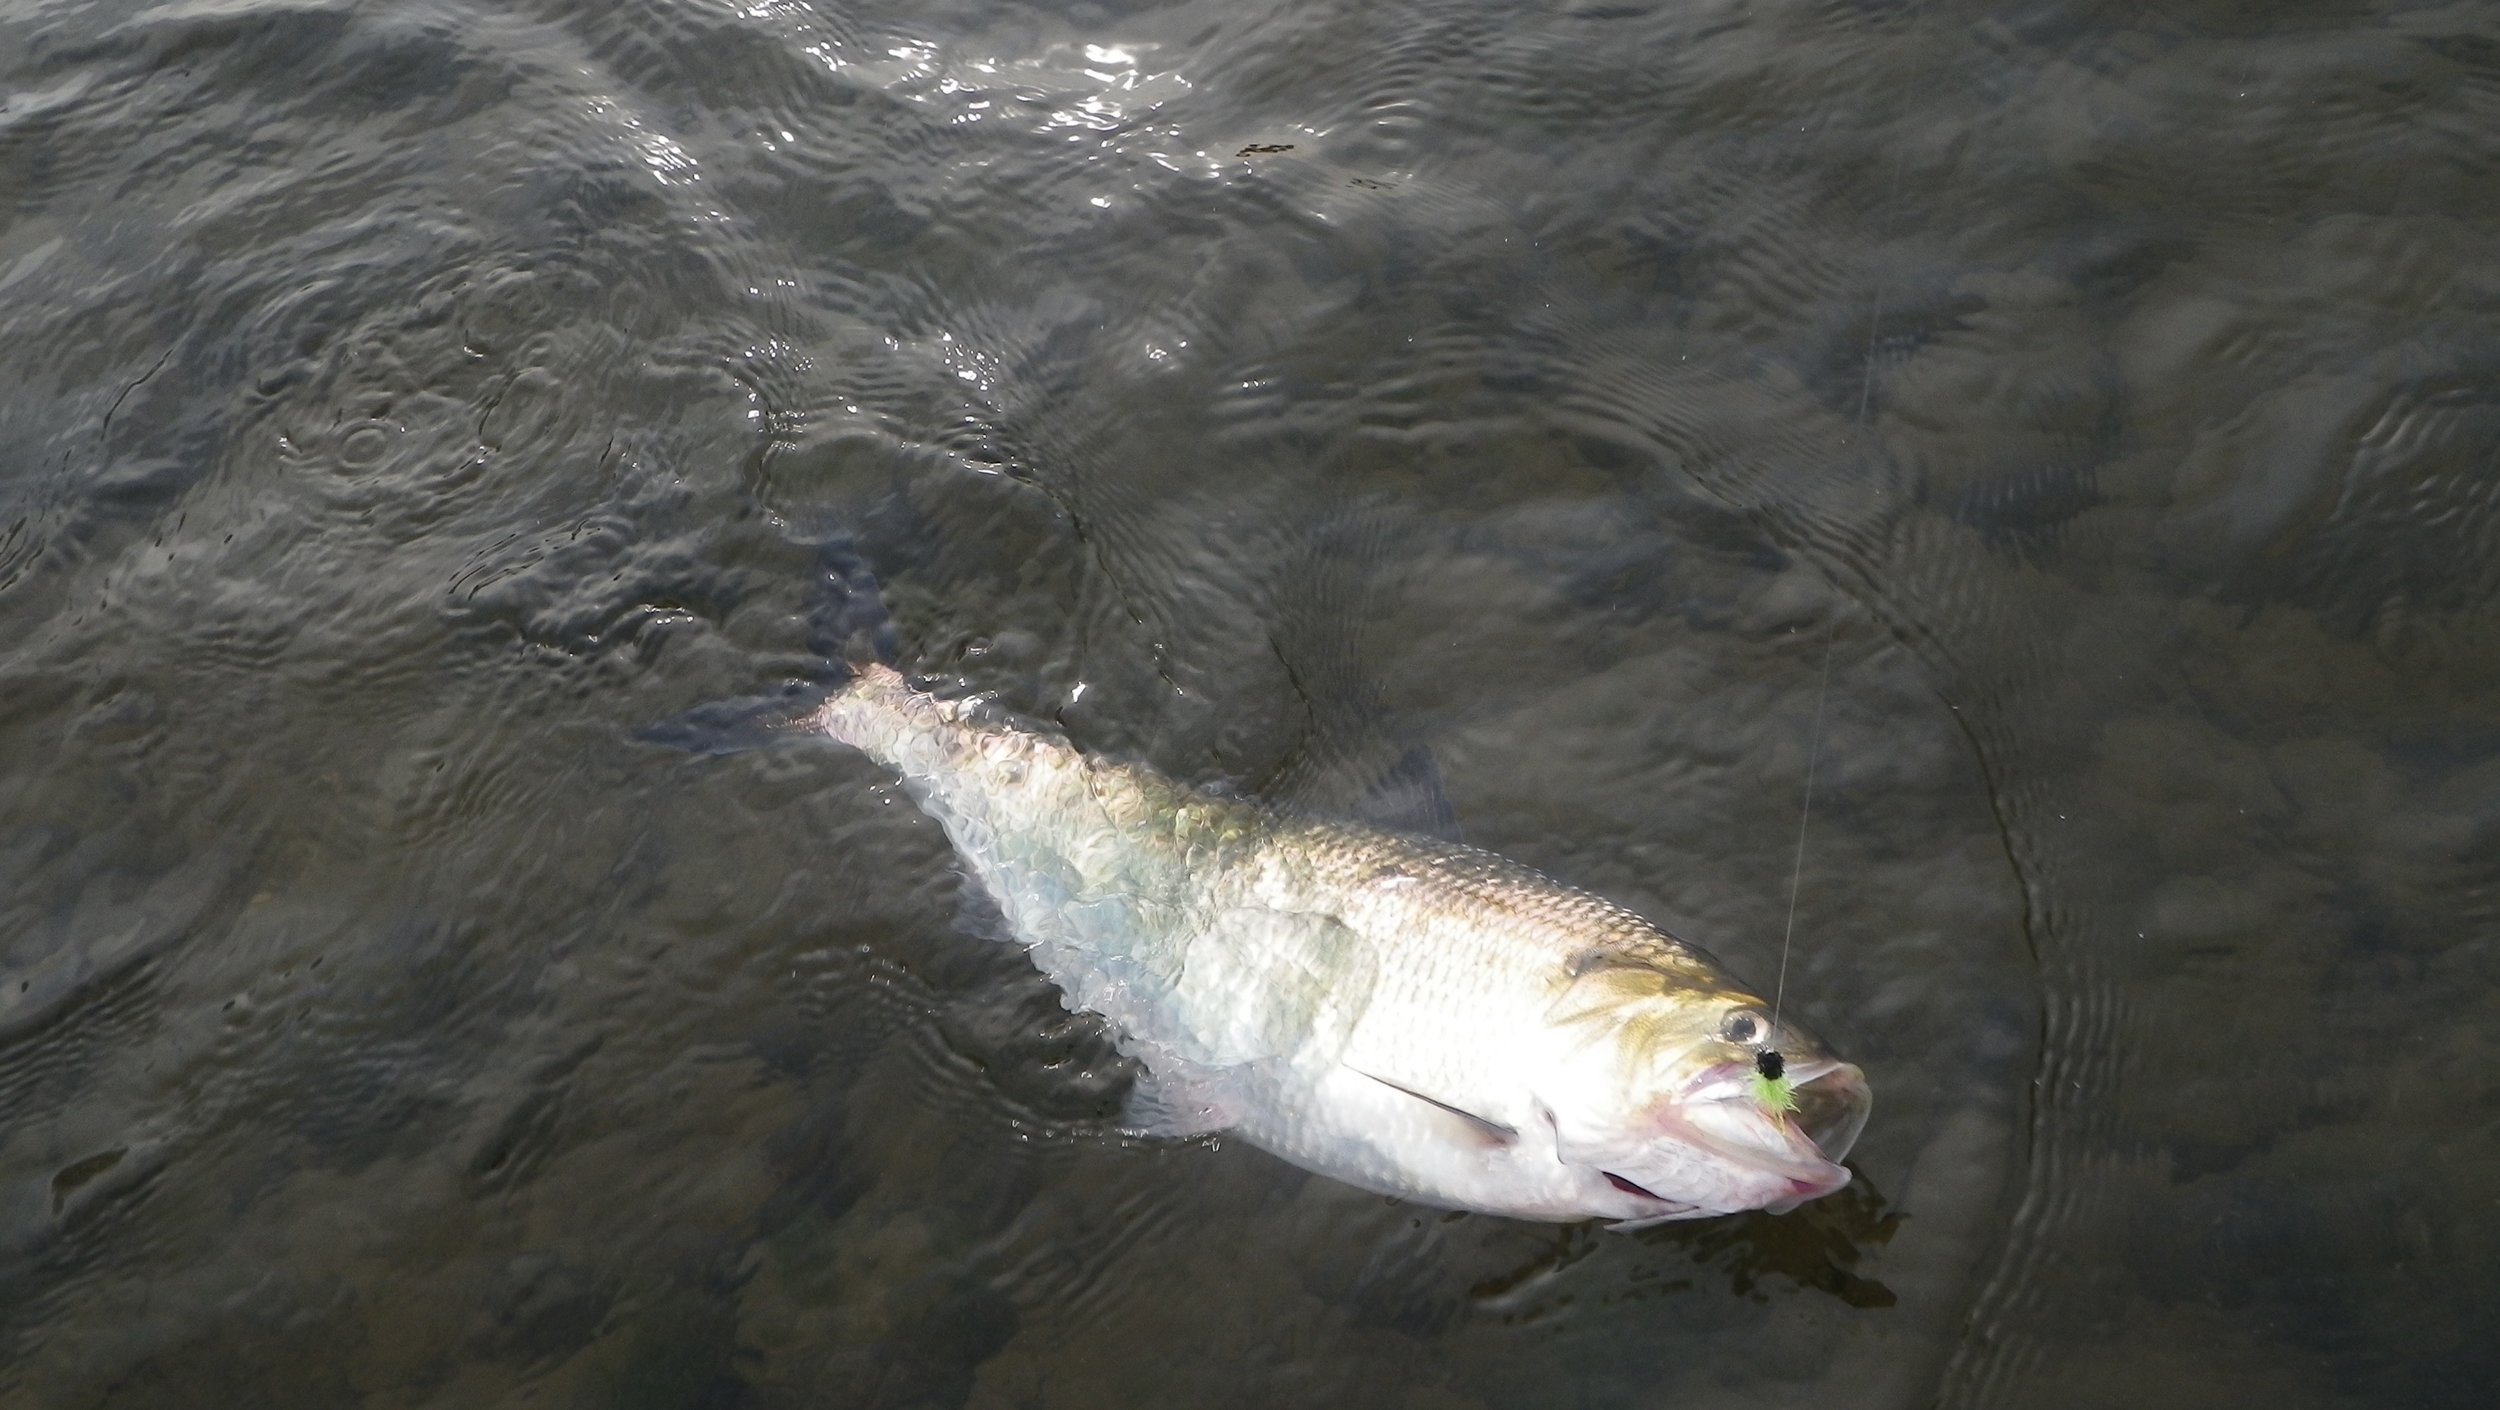 An early season shad in prime condition.